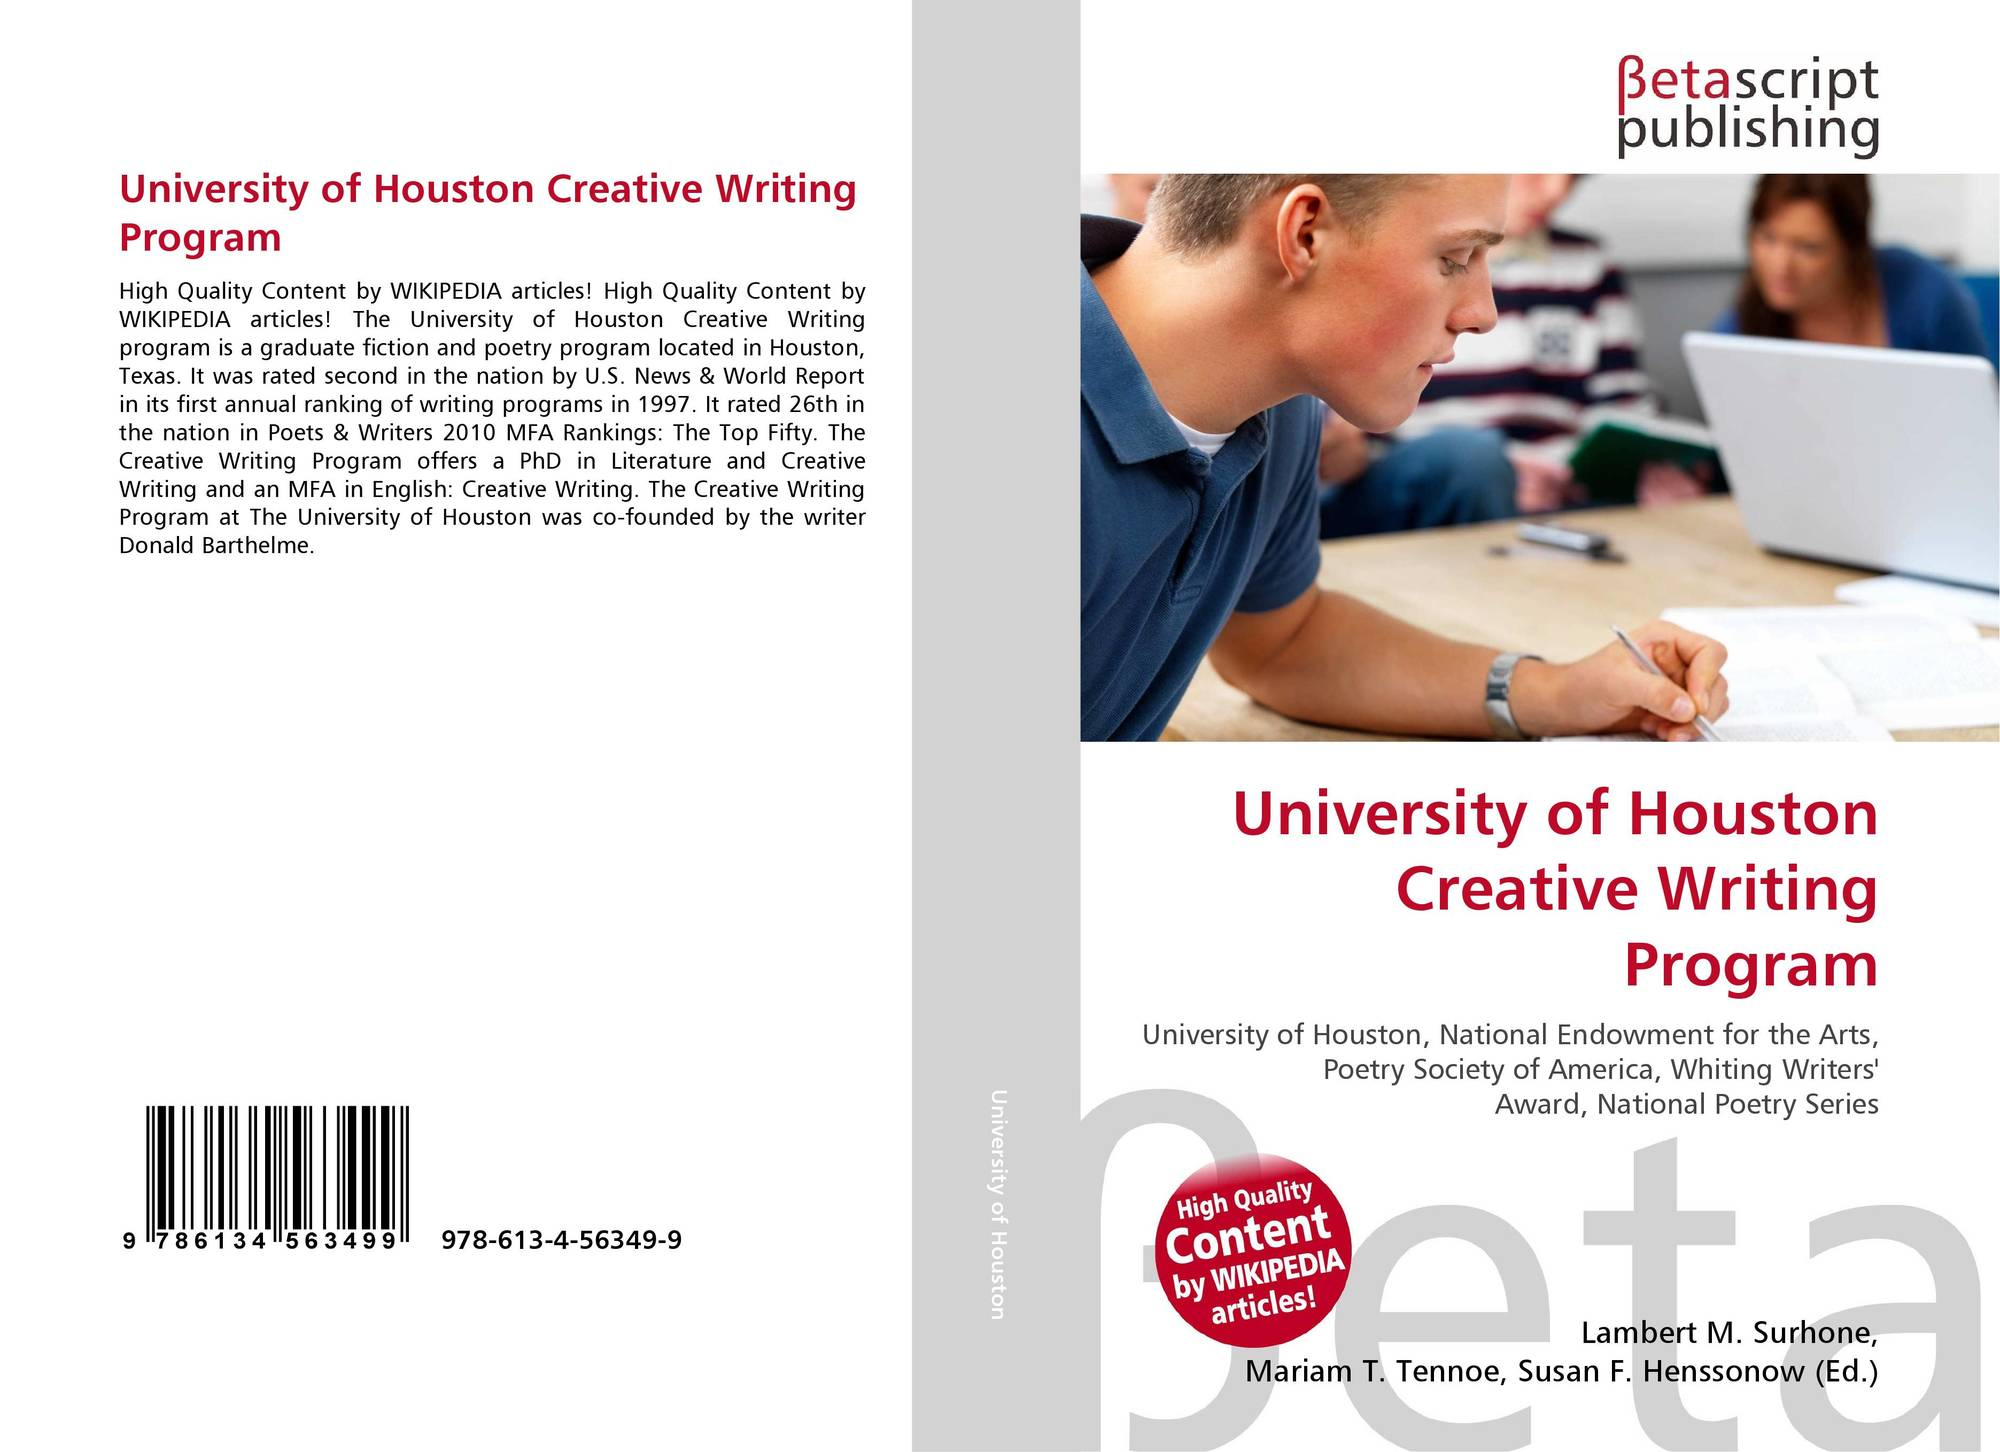 phd programs in english and creative writing